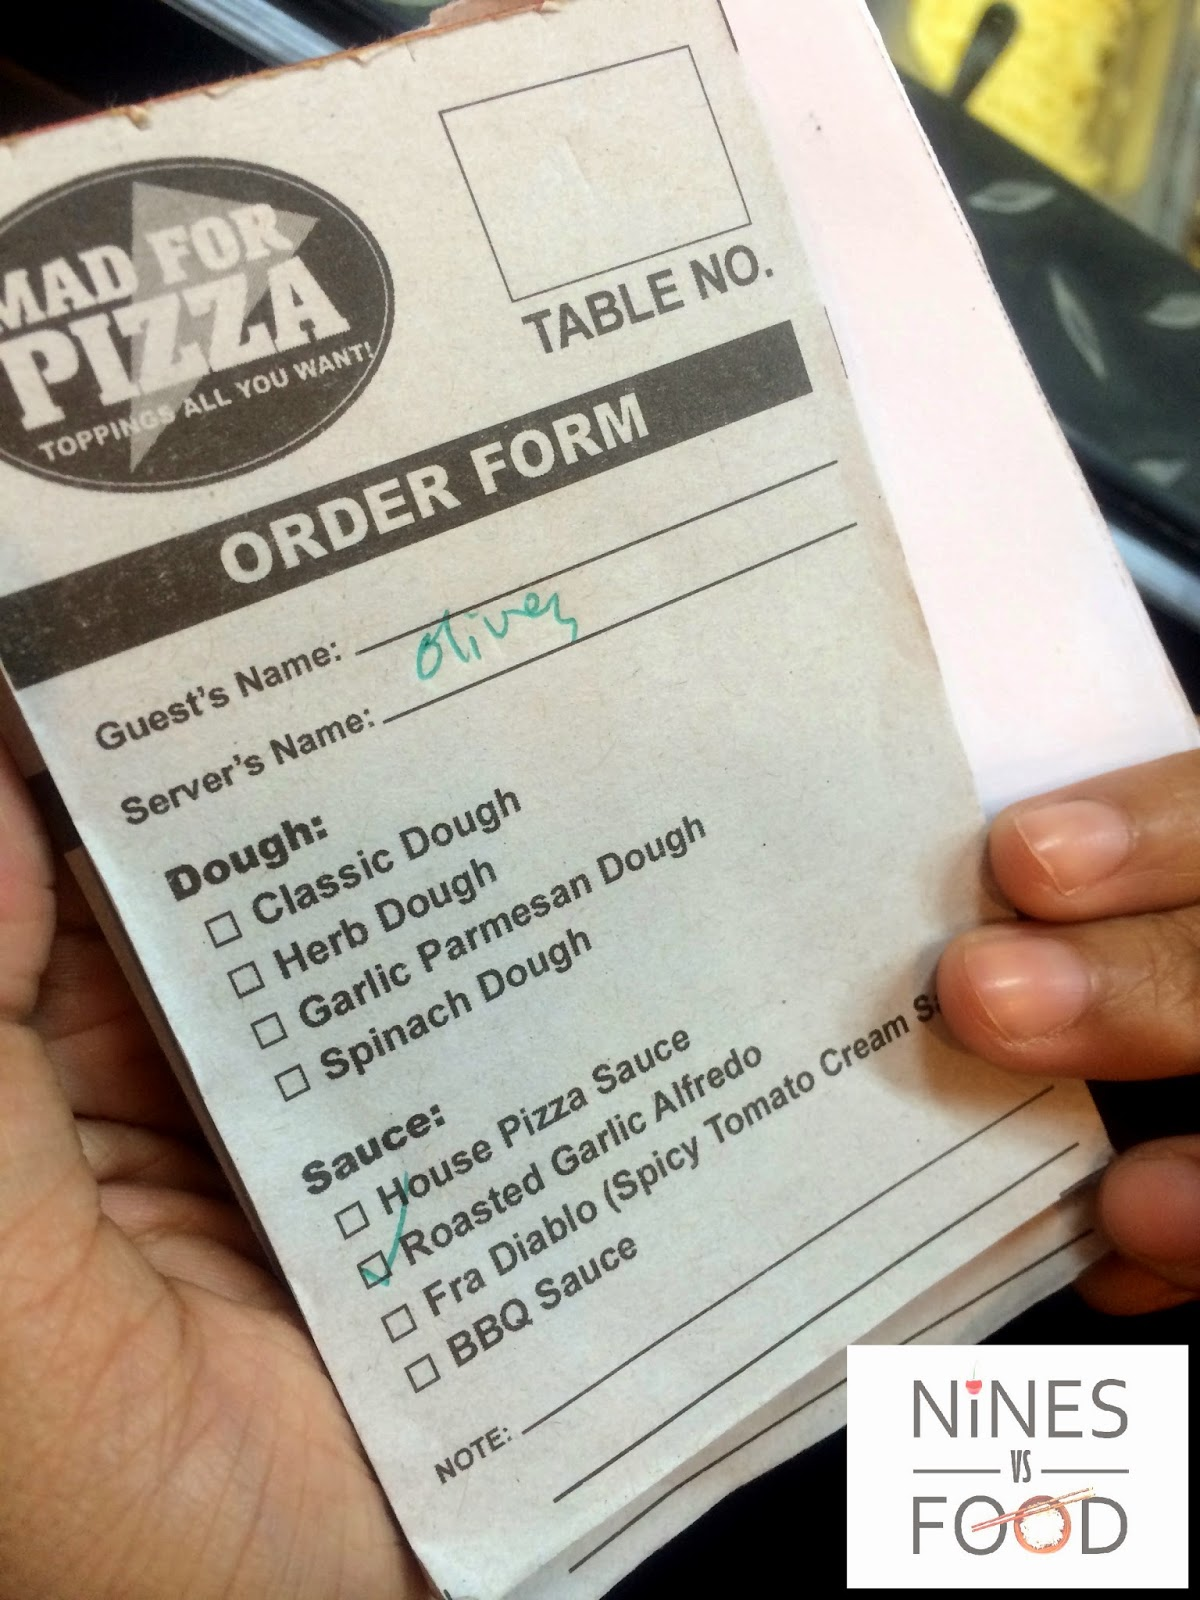 Nines vs. Food - Mad For Pizza-10.jpg